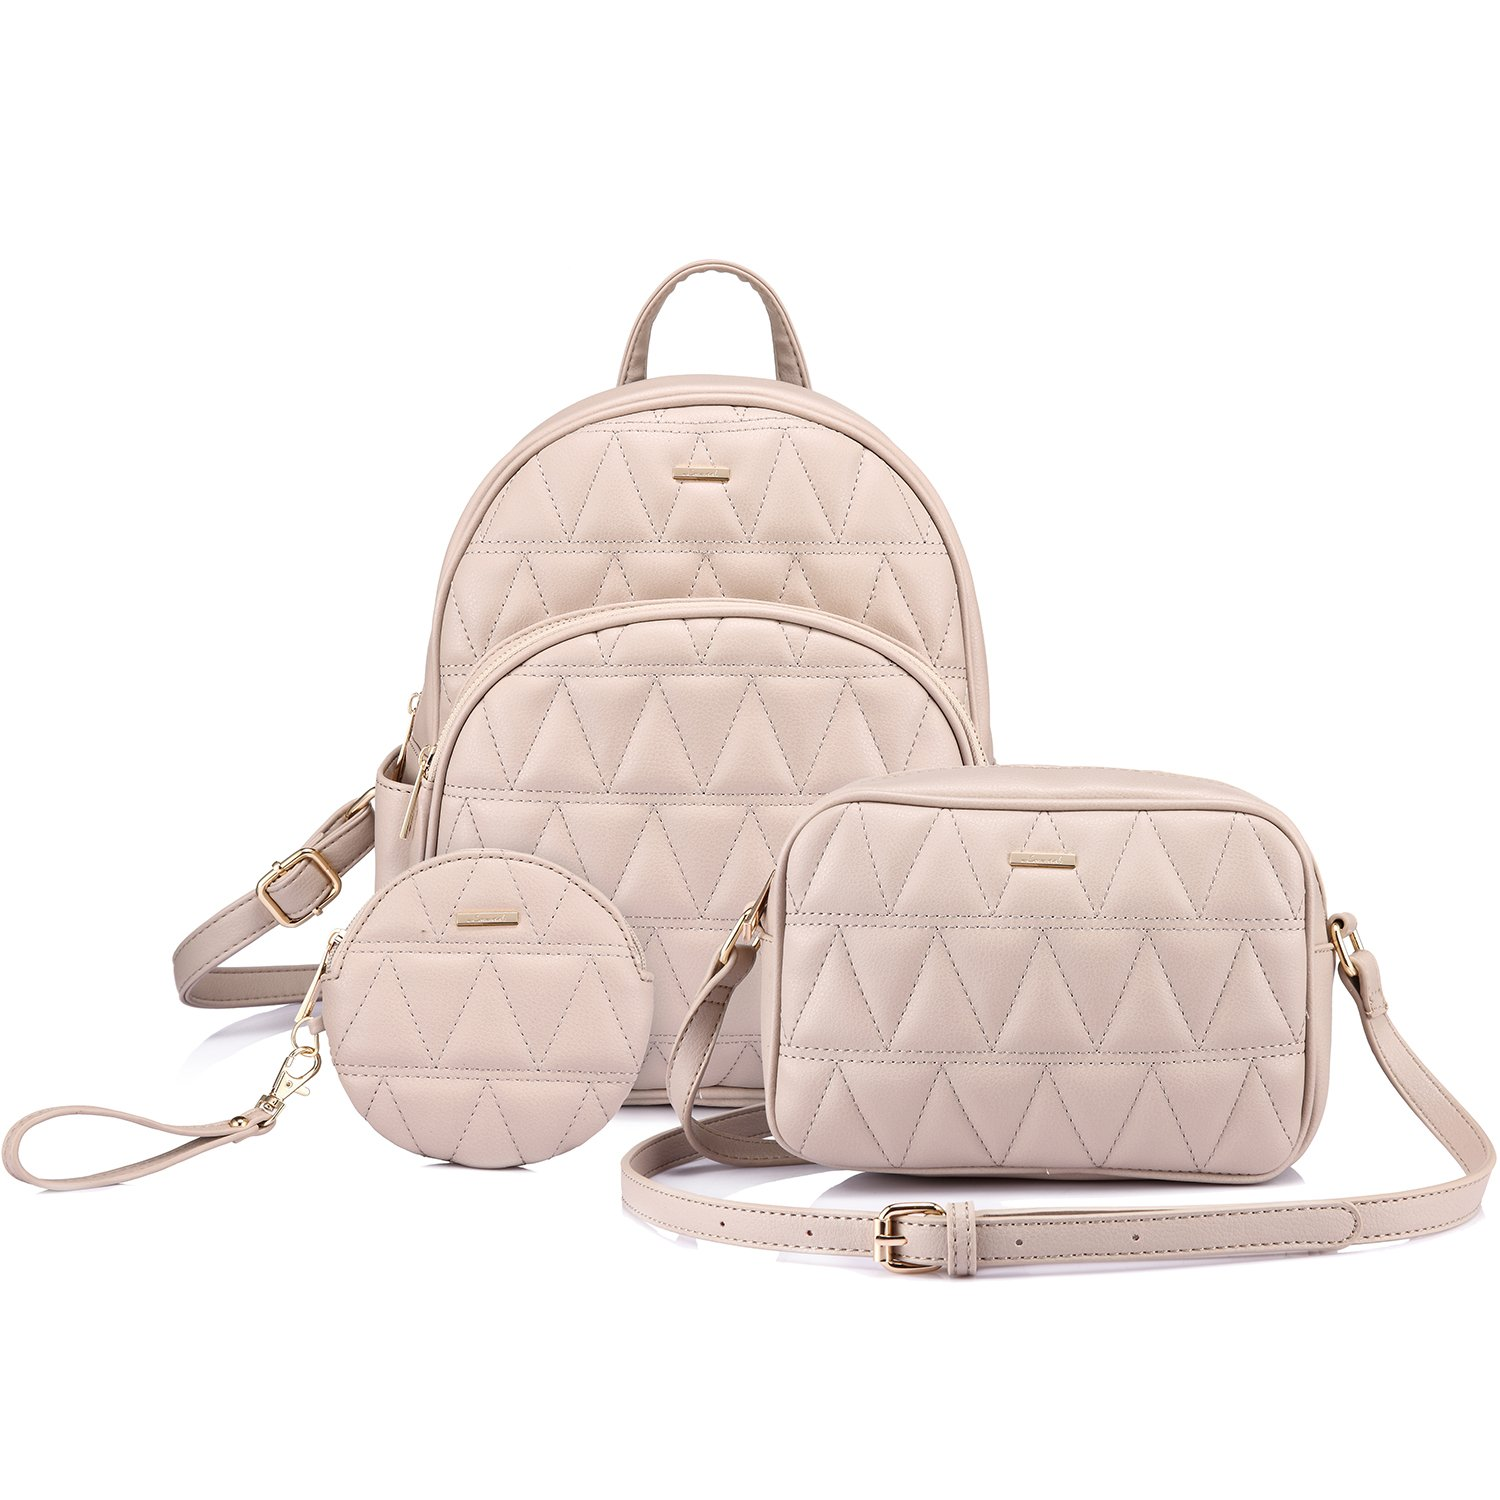 Backpack Purse Quilted Casual Backpacks Handbags for Women Shoulder Bag Coin bag 3 Pieces Set Beige